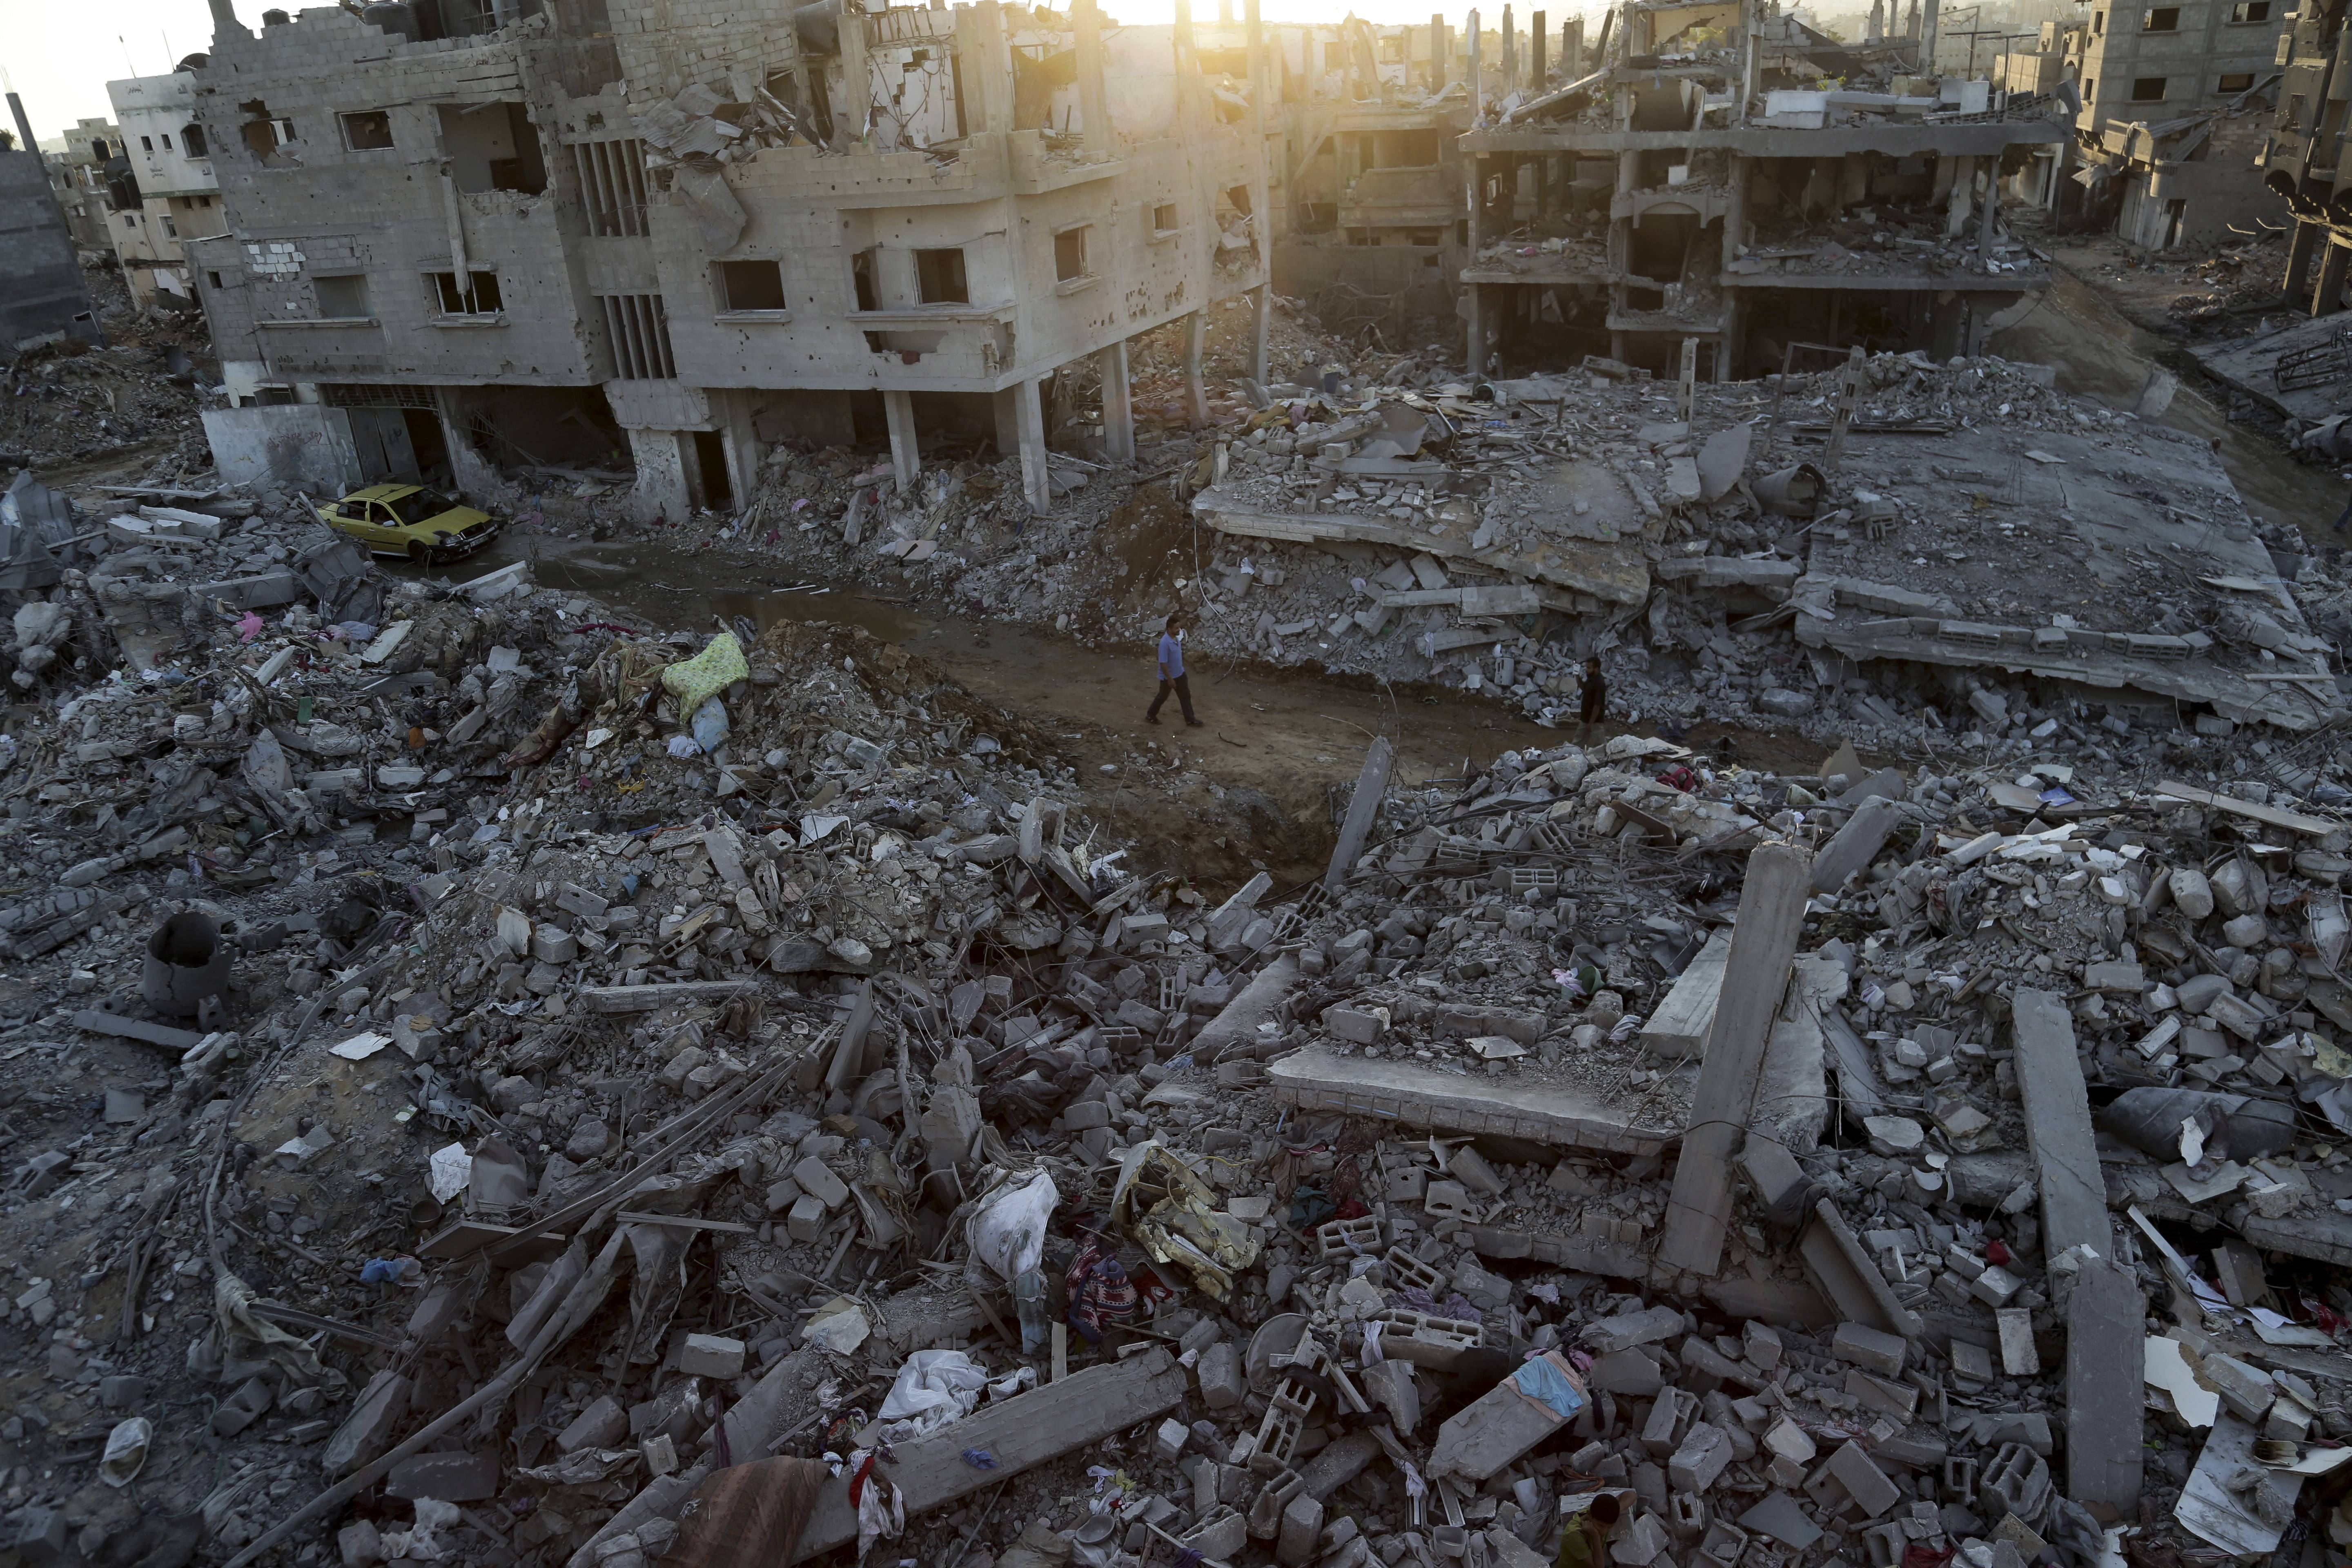 Palestinians walks next the rubble of homes destroyed by Israeli strikes in the town of Beit Hanoun, in the northern Gaza Strip, Tuesday, Aug. 12, 2014.